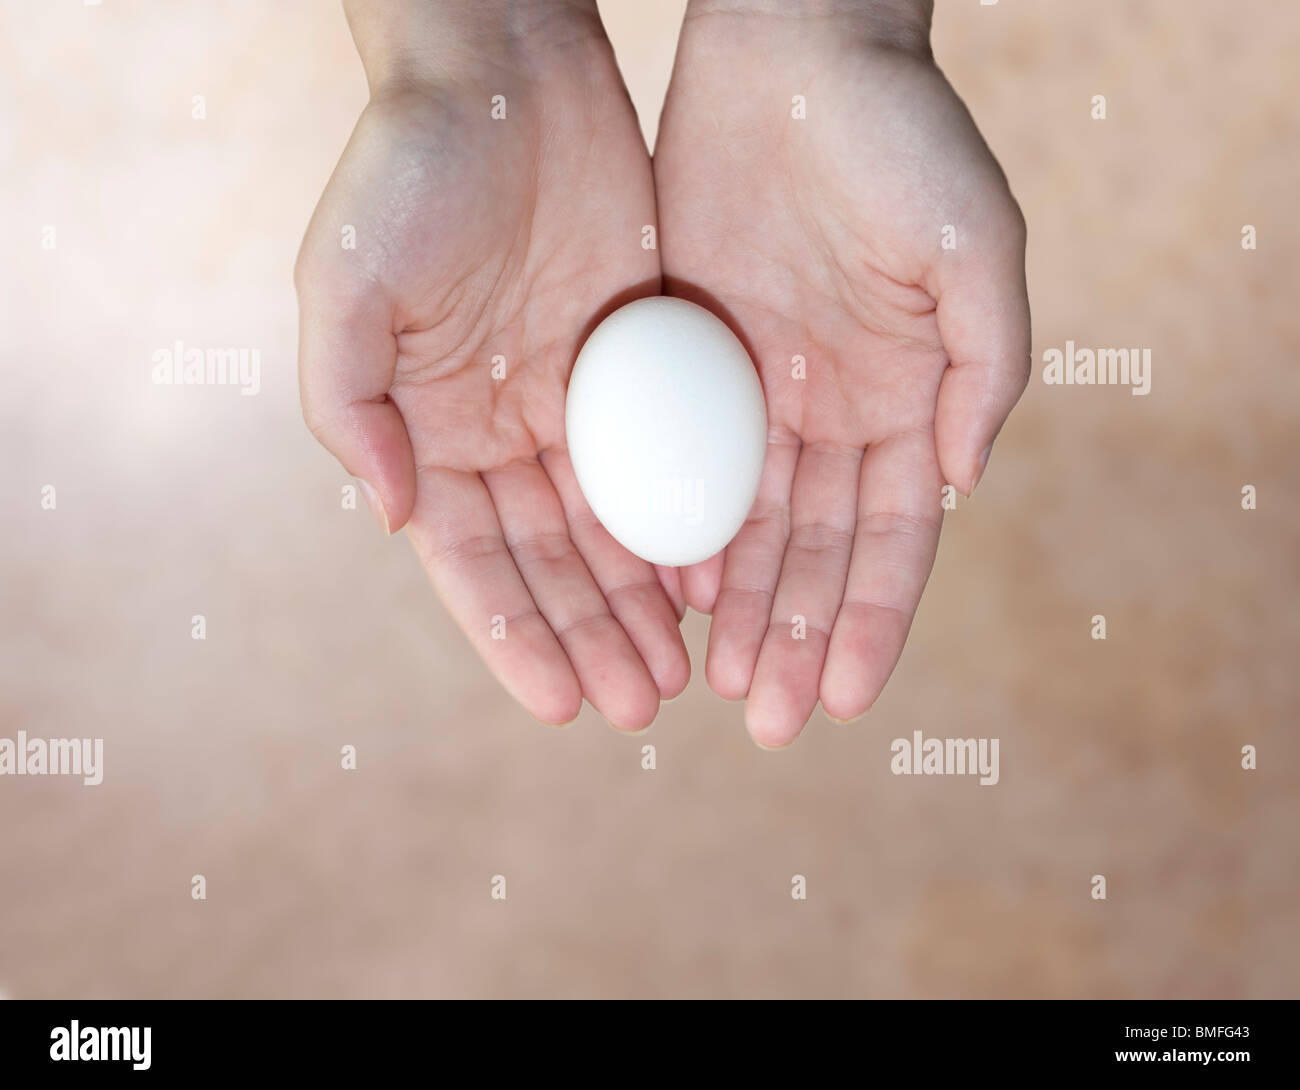 A conceptual image of a young woman's hands holding an egg against a beige background. Concept fertility, concept - Stock Image